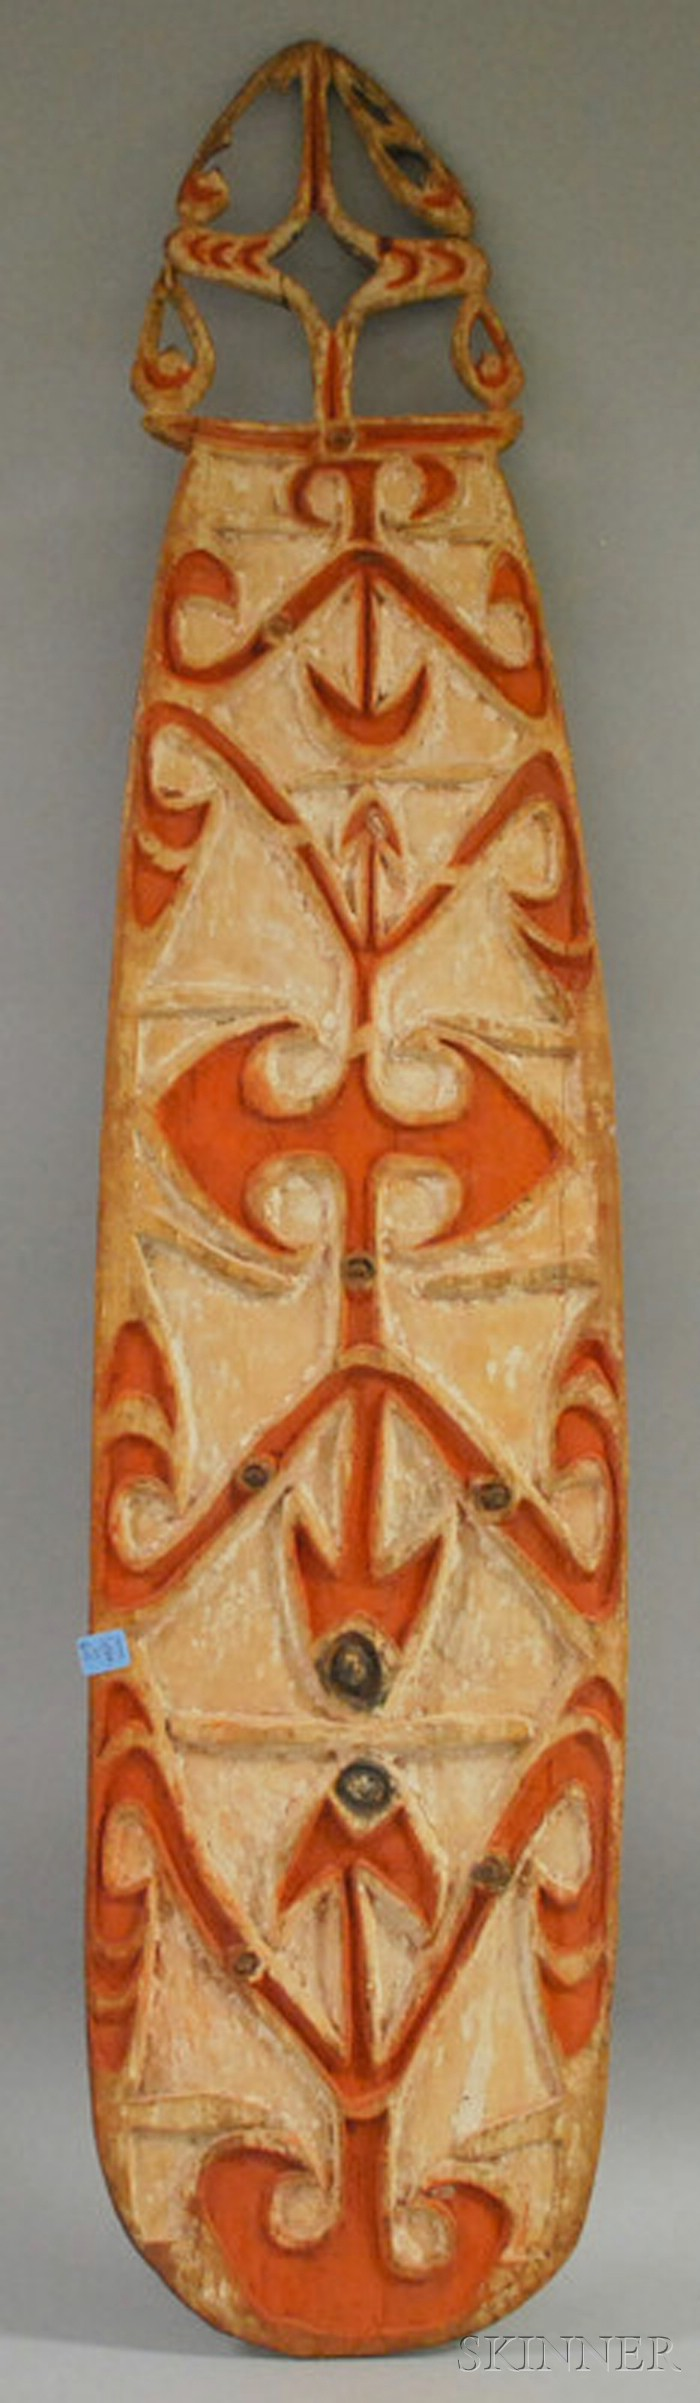 New Guinea Carved and Painted Shield